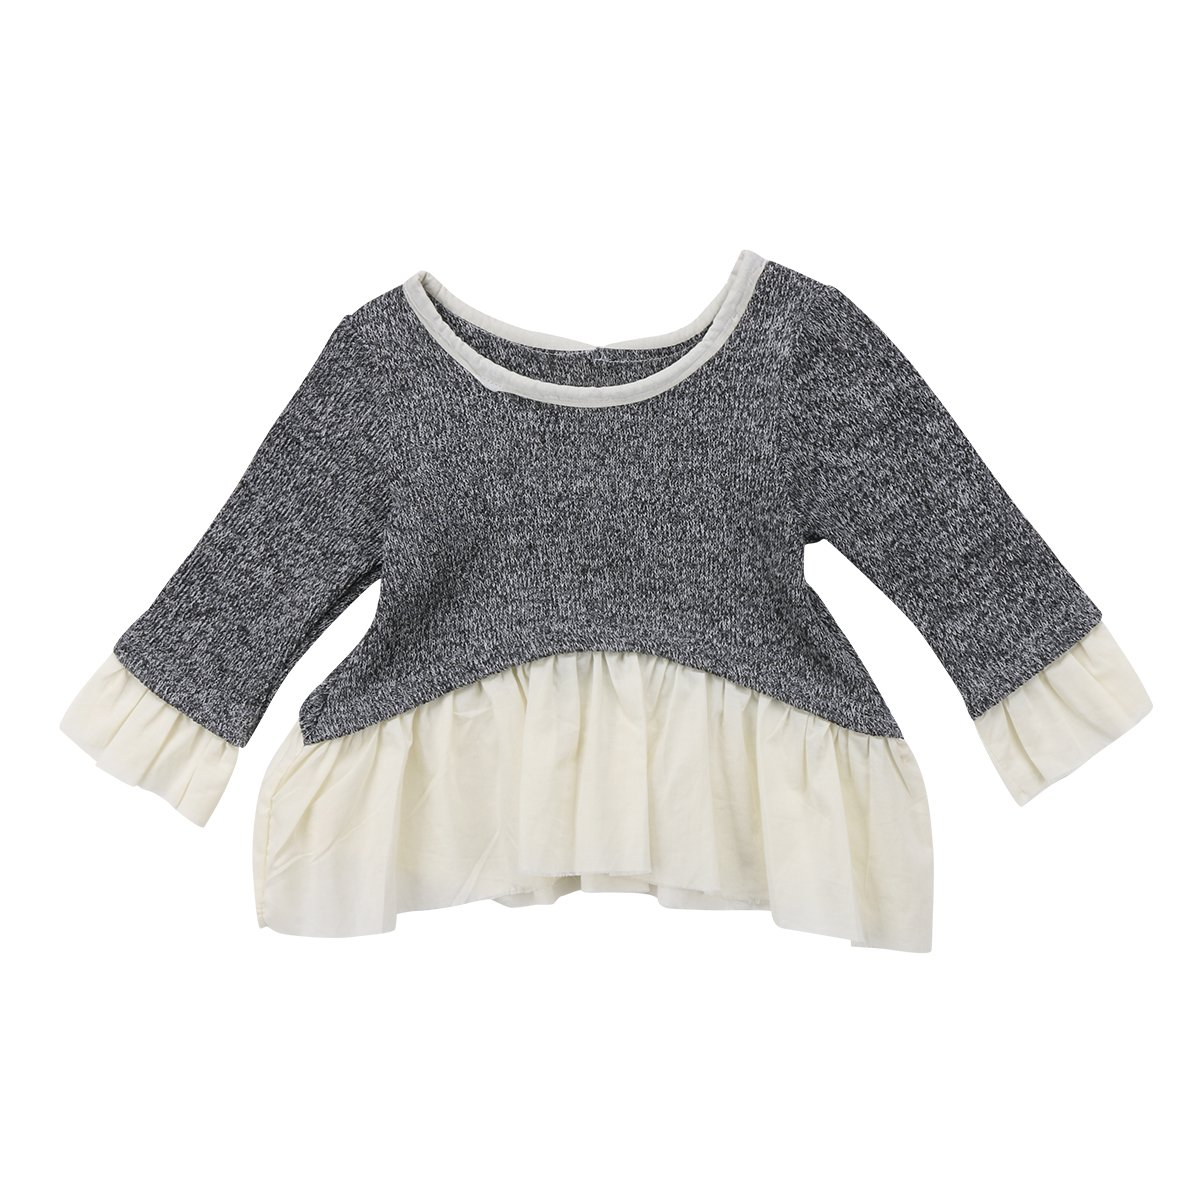 Lahyra Newborn Baby Girl Long Sleeve Top Knitted Sweater Ruffle Blouse Casual Clothes